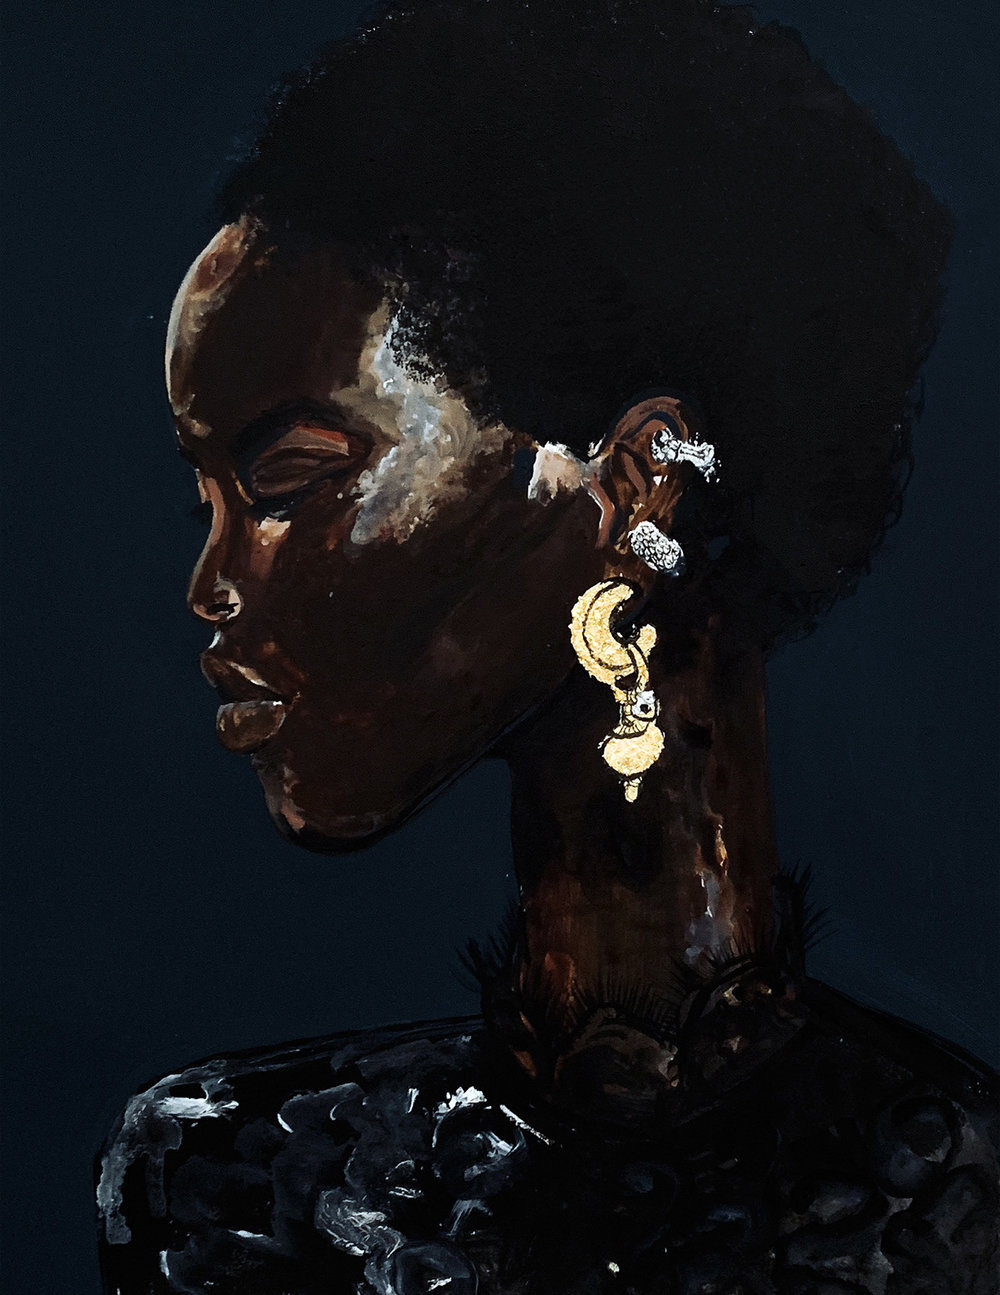 Etro Earrings - Mixed media painting on paper with gold and silver foil29.3x36.8cm£400